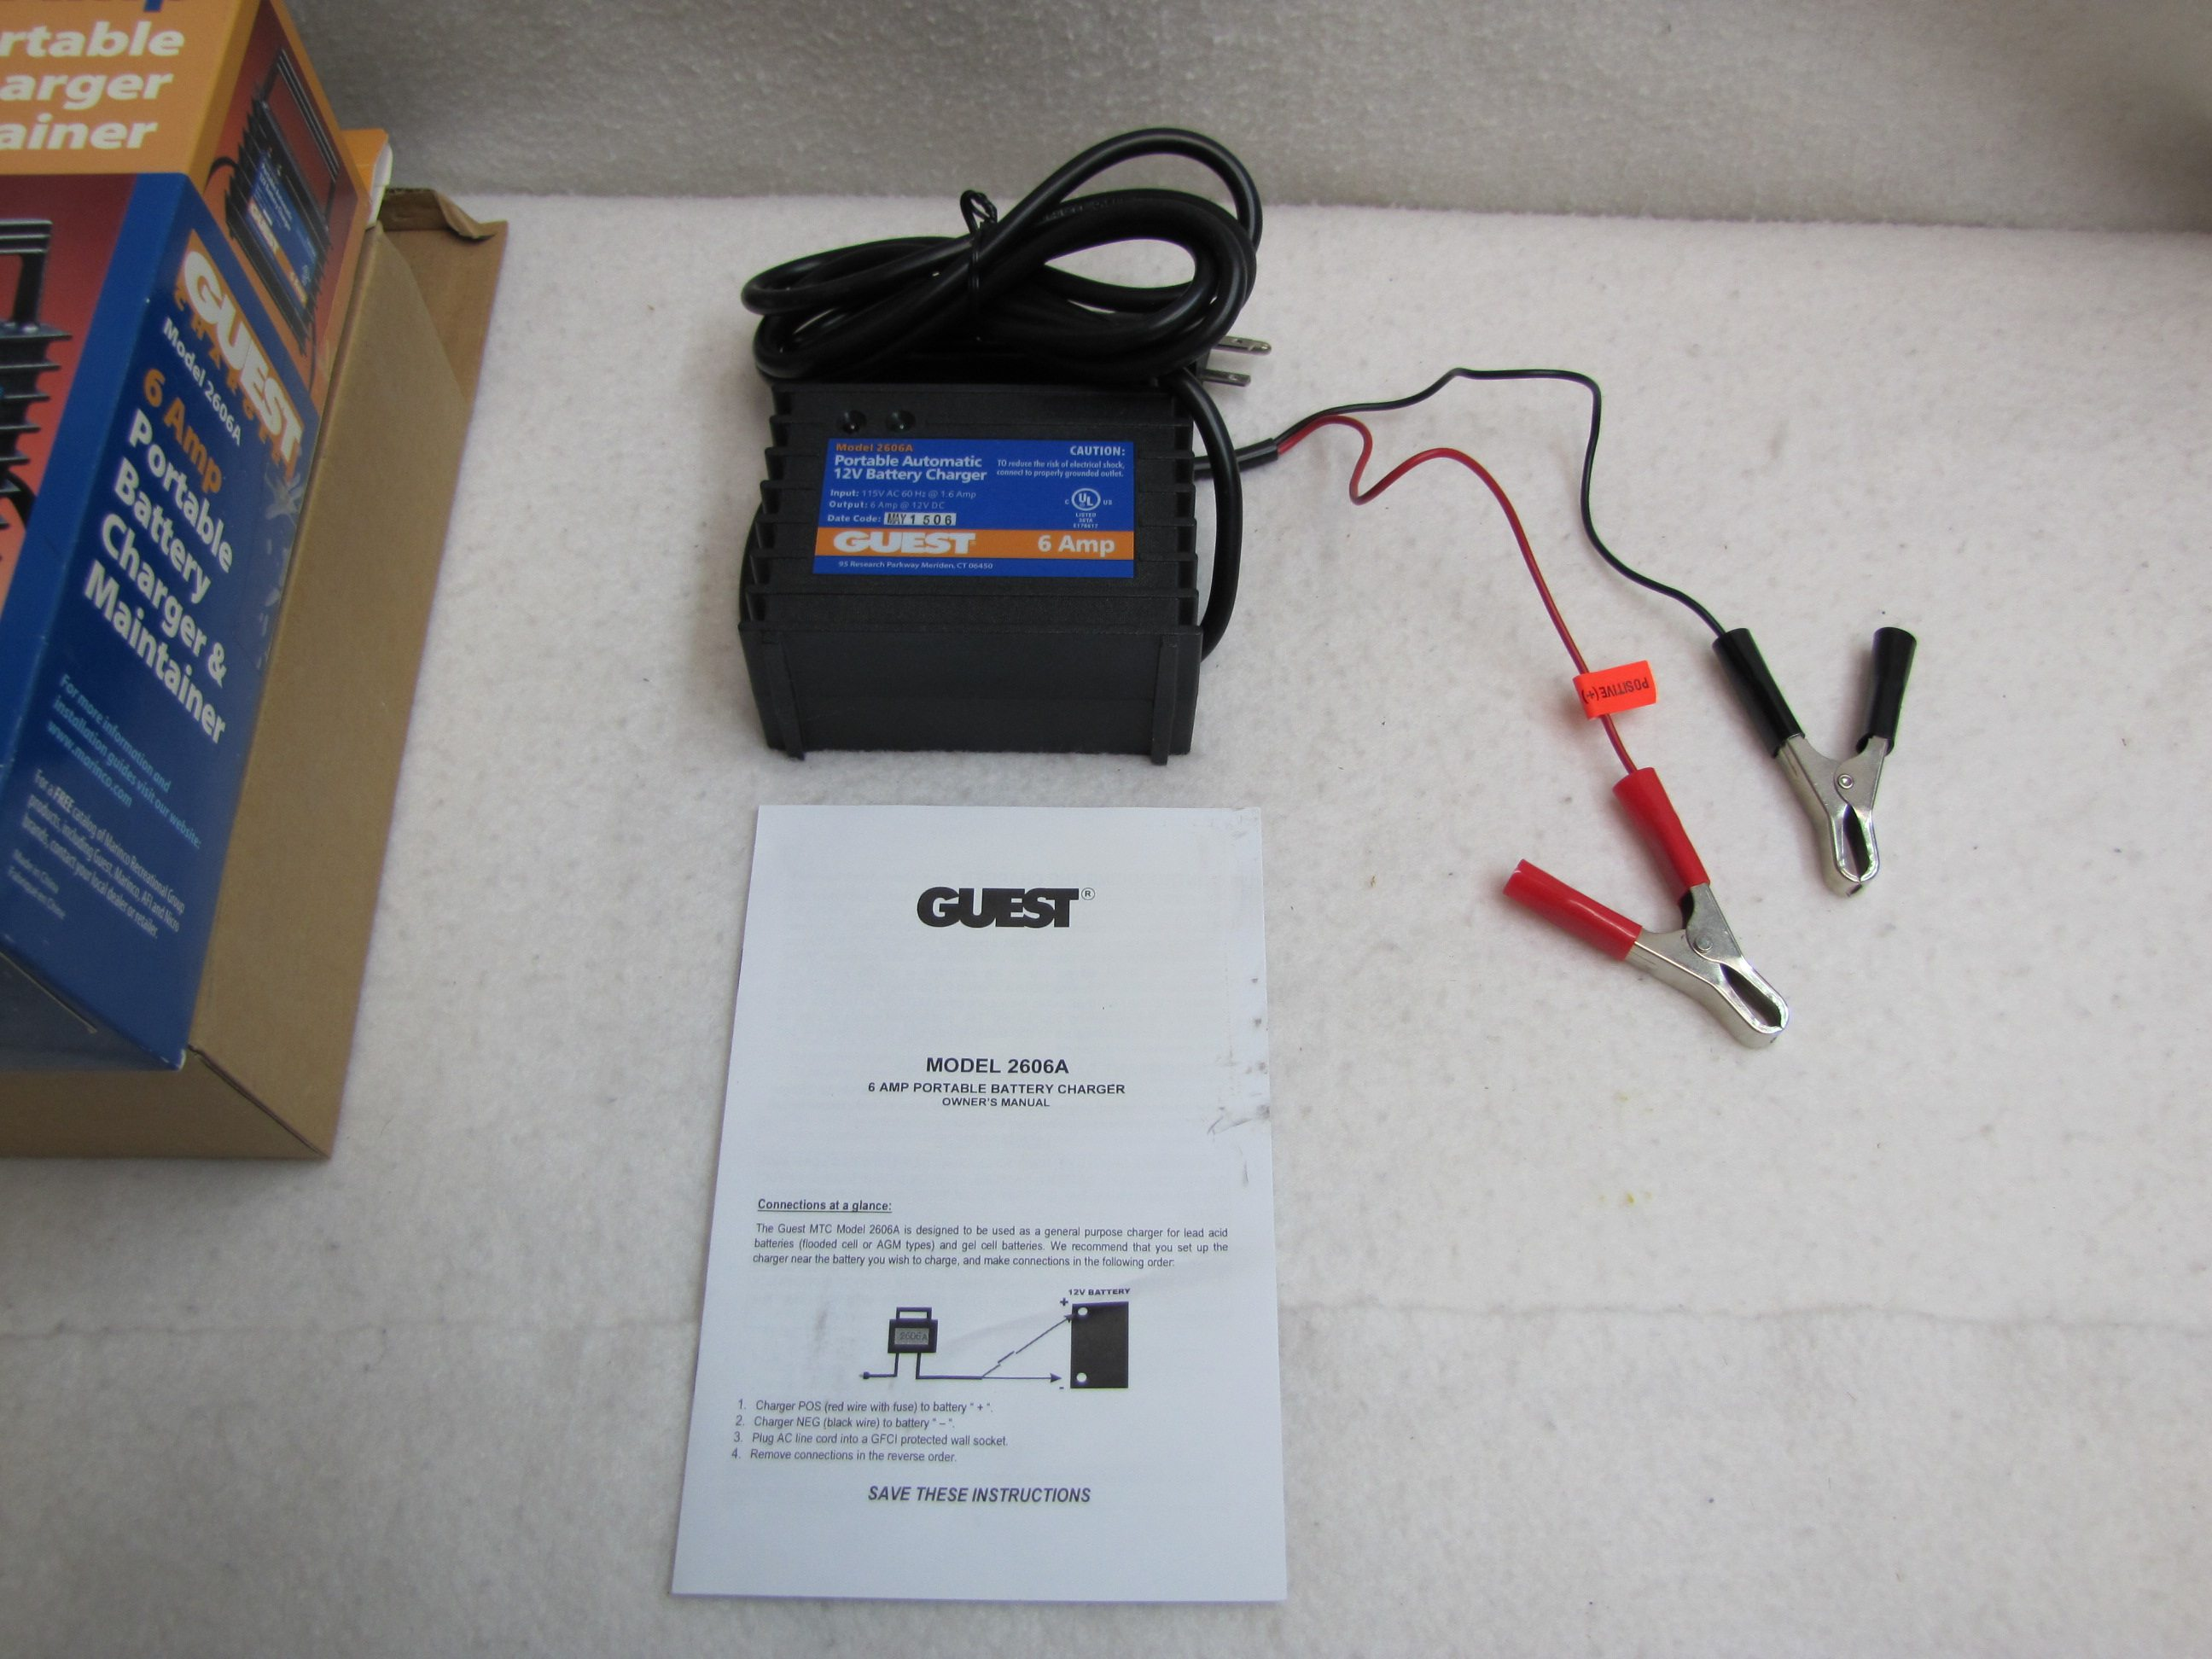 Guest Onboard Battery Charger Installation Diagram Wiring Maintainer 6 Amp Portable Marine Model 2606aguest